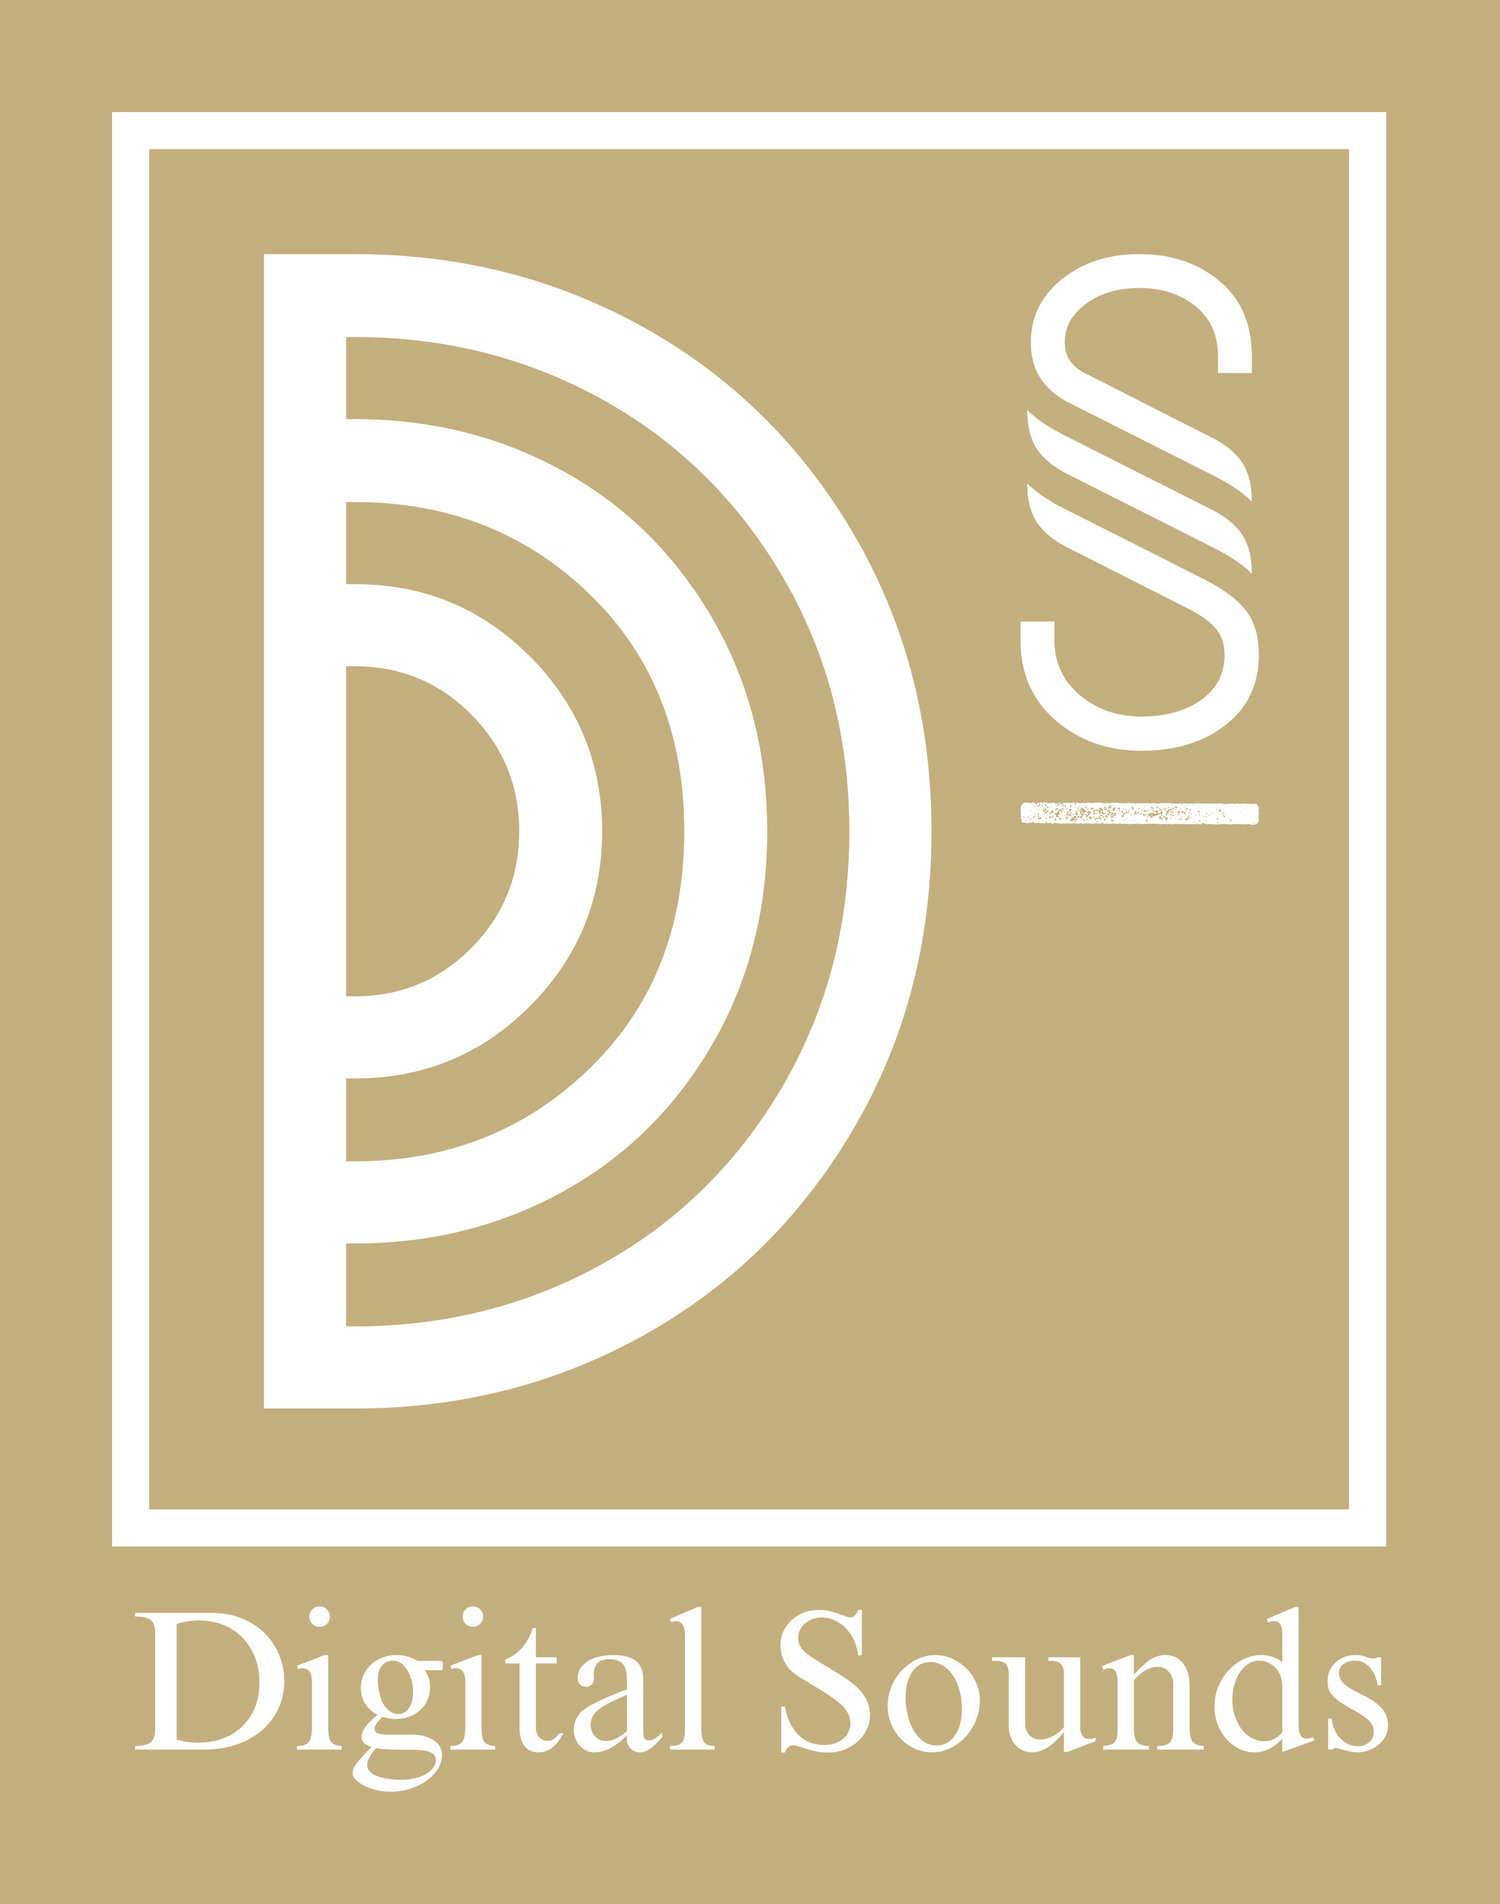 Digital Sounds Entertainment Services